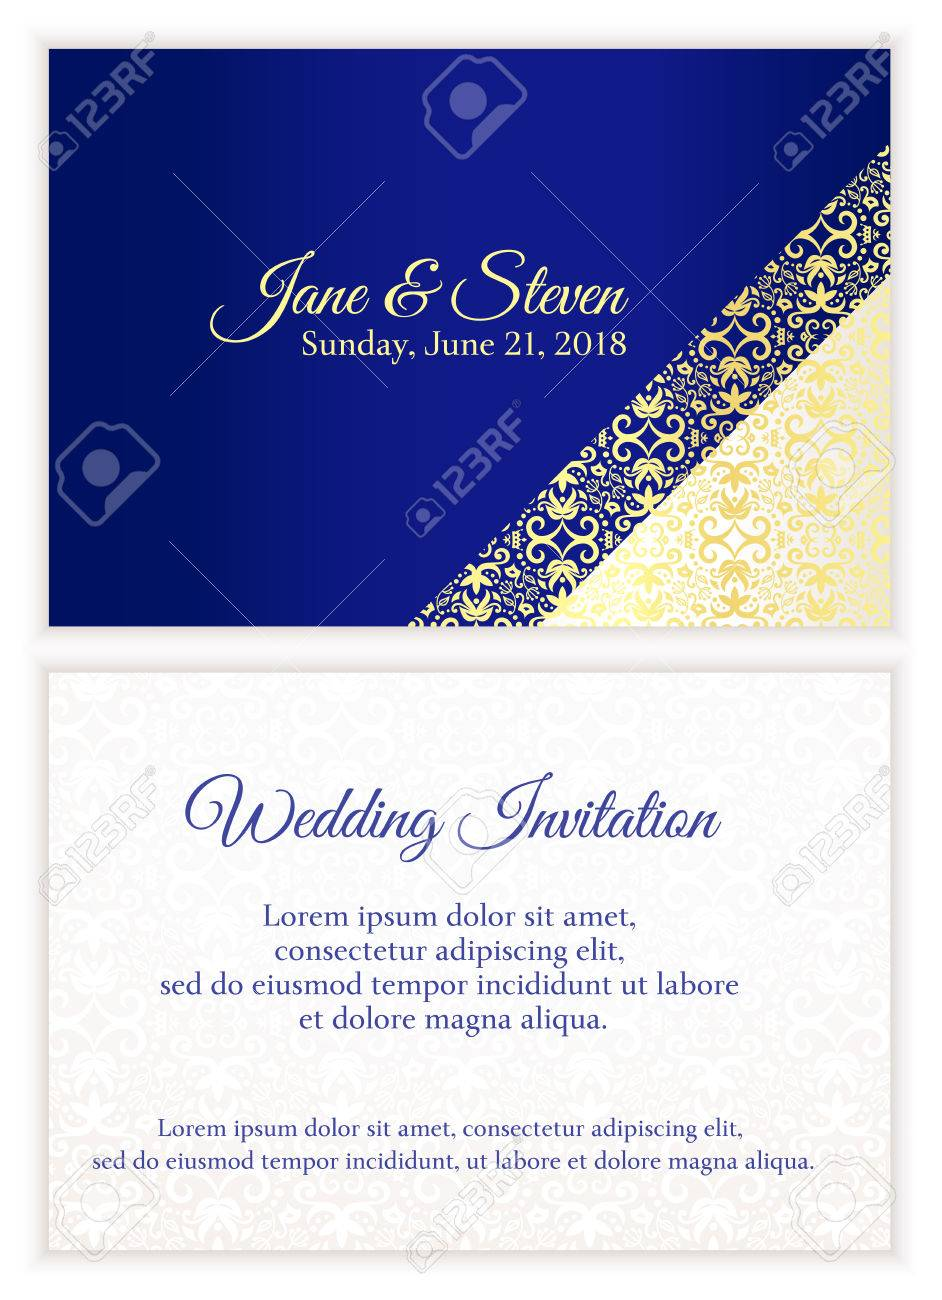 Blue Wedding Invitation With Luxury Golden Lace In Corner And ...